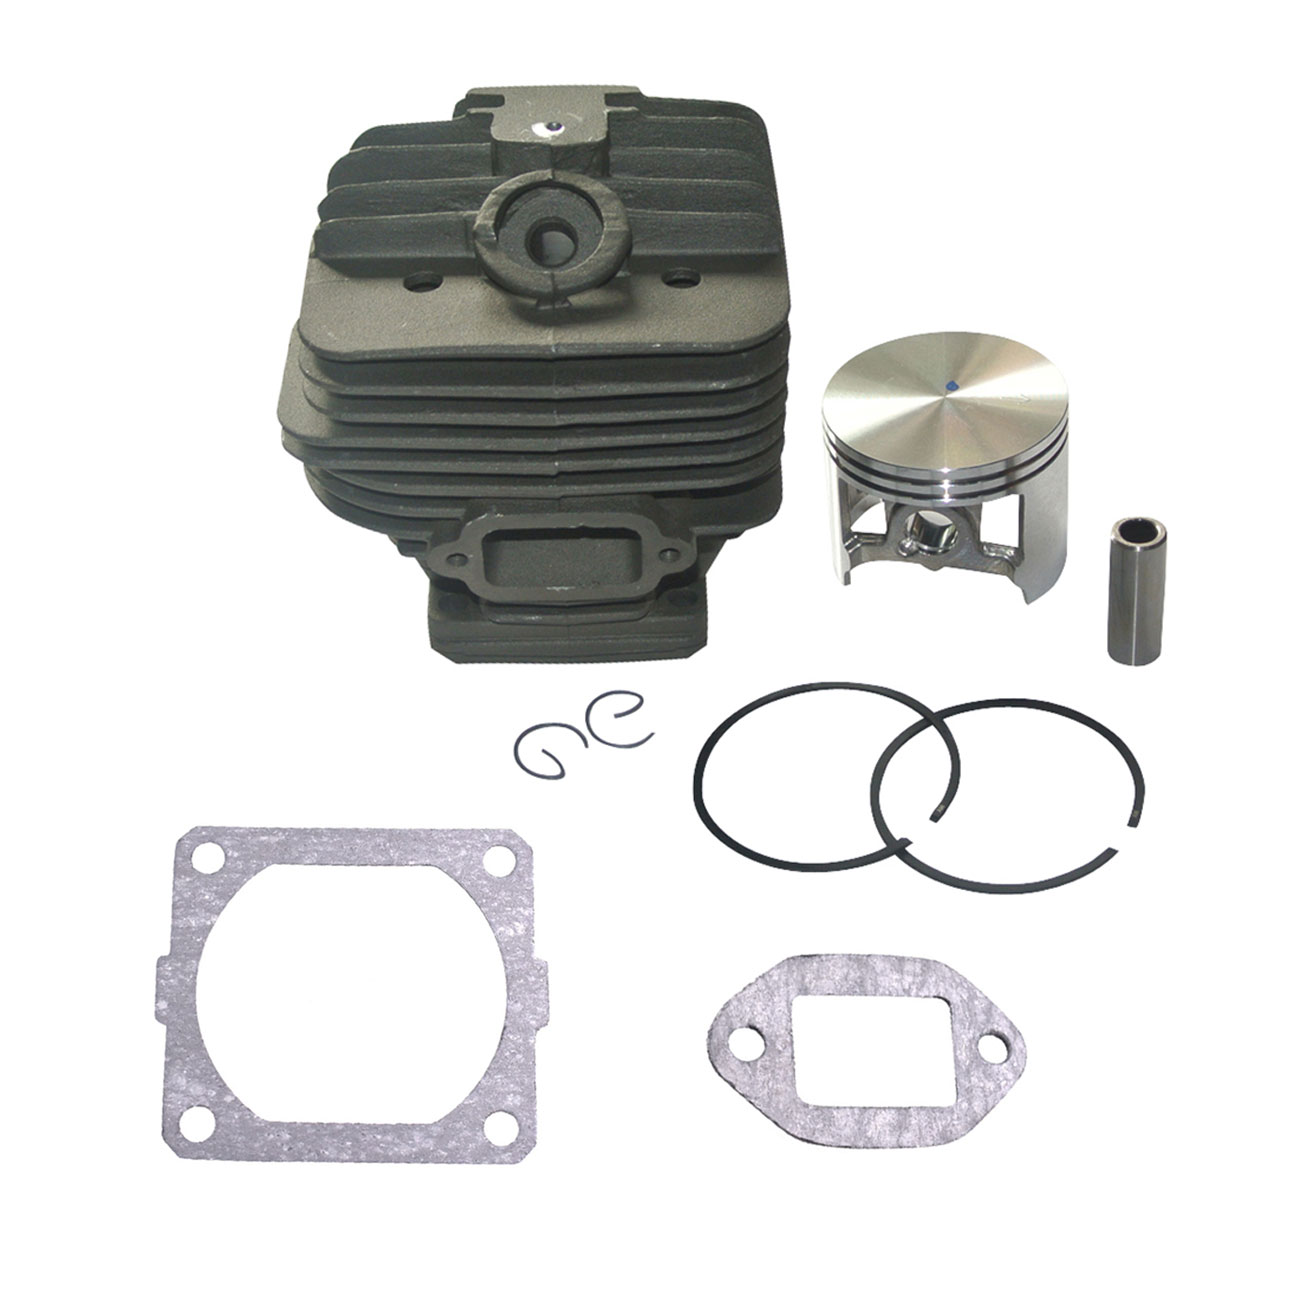 54mm Cylinder Piston Ring Kit For Stihl Chainsaw 066 MS660 kraftool 29400